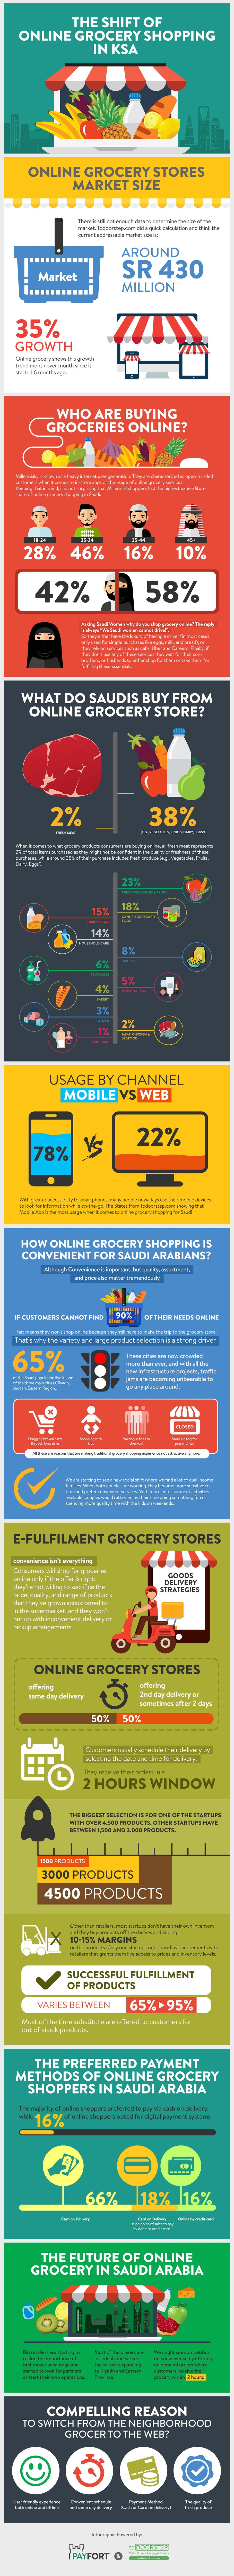 Infographic: Online Grocery Shopping Rises In Saudi Arabia's E